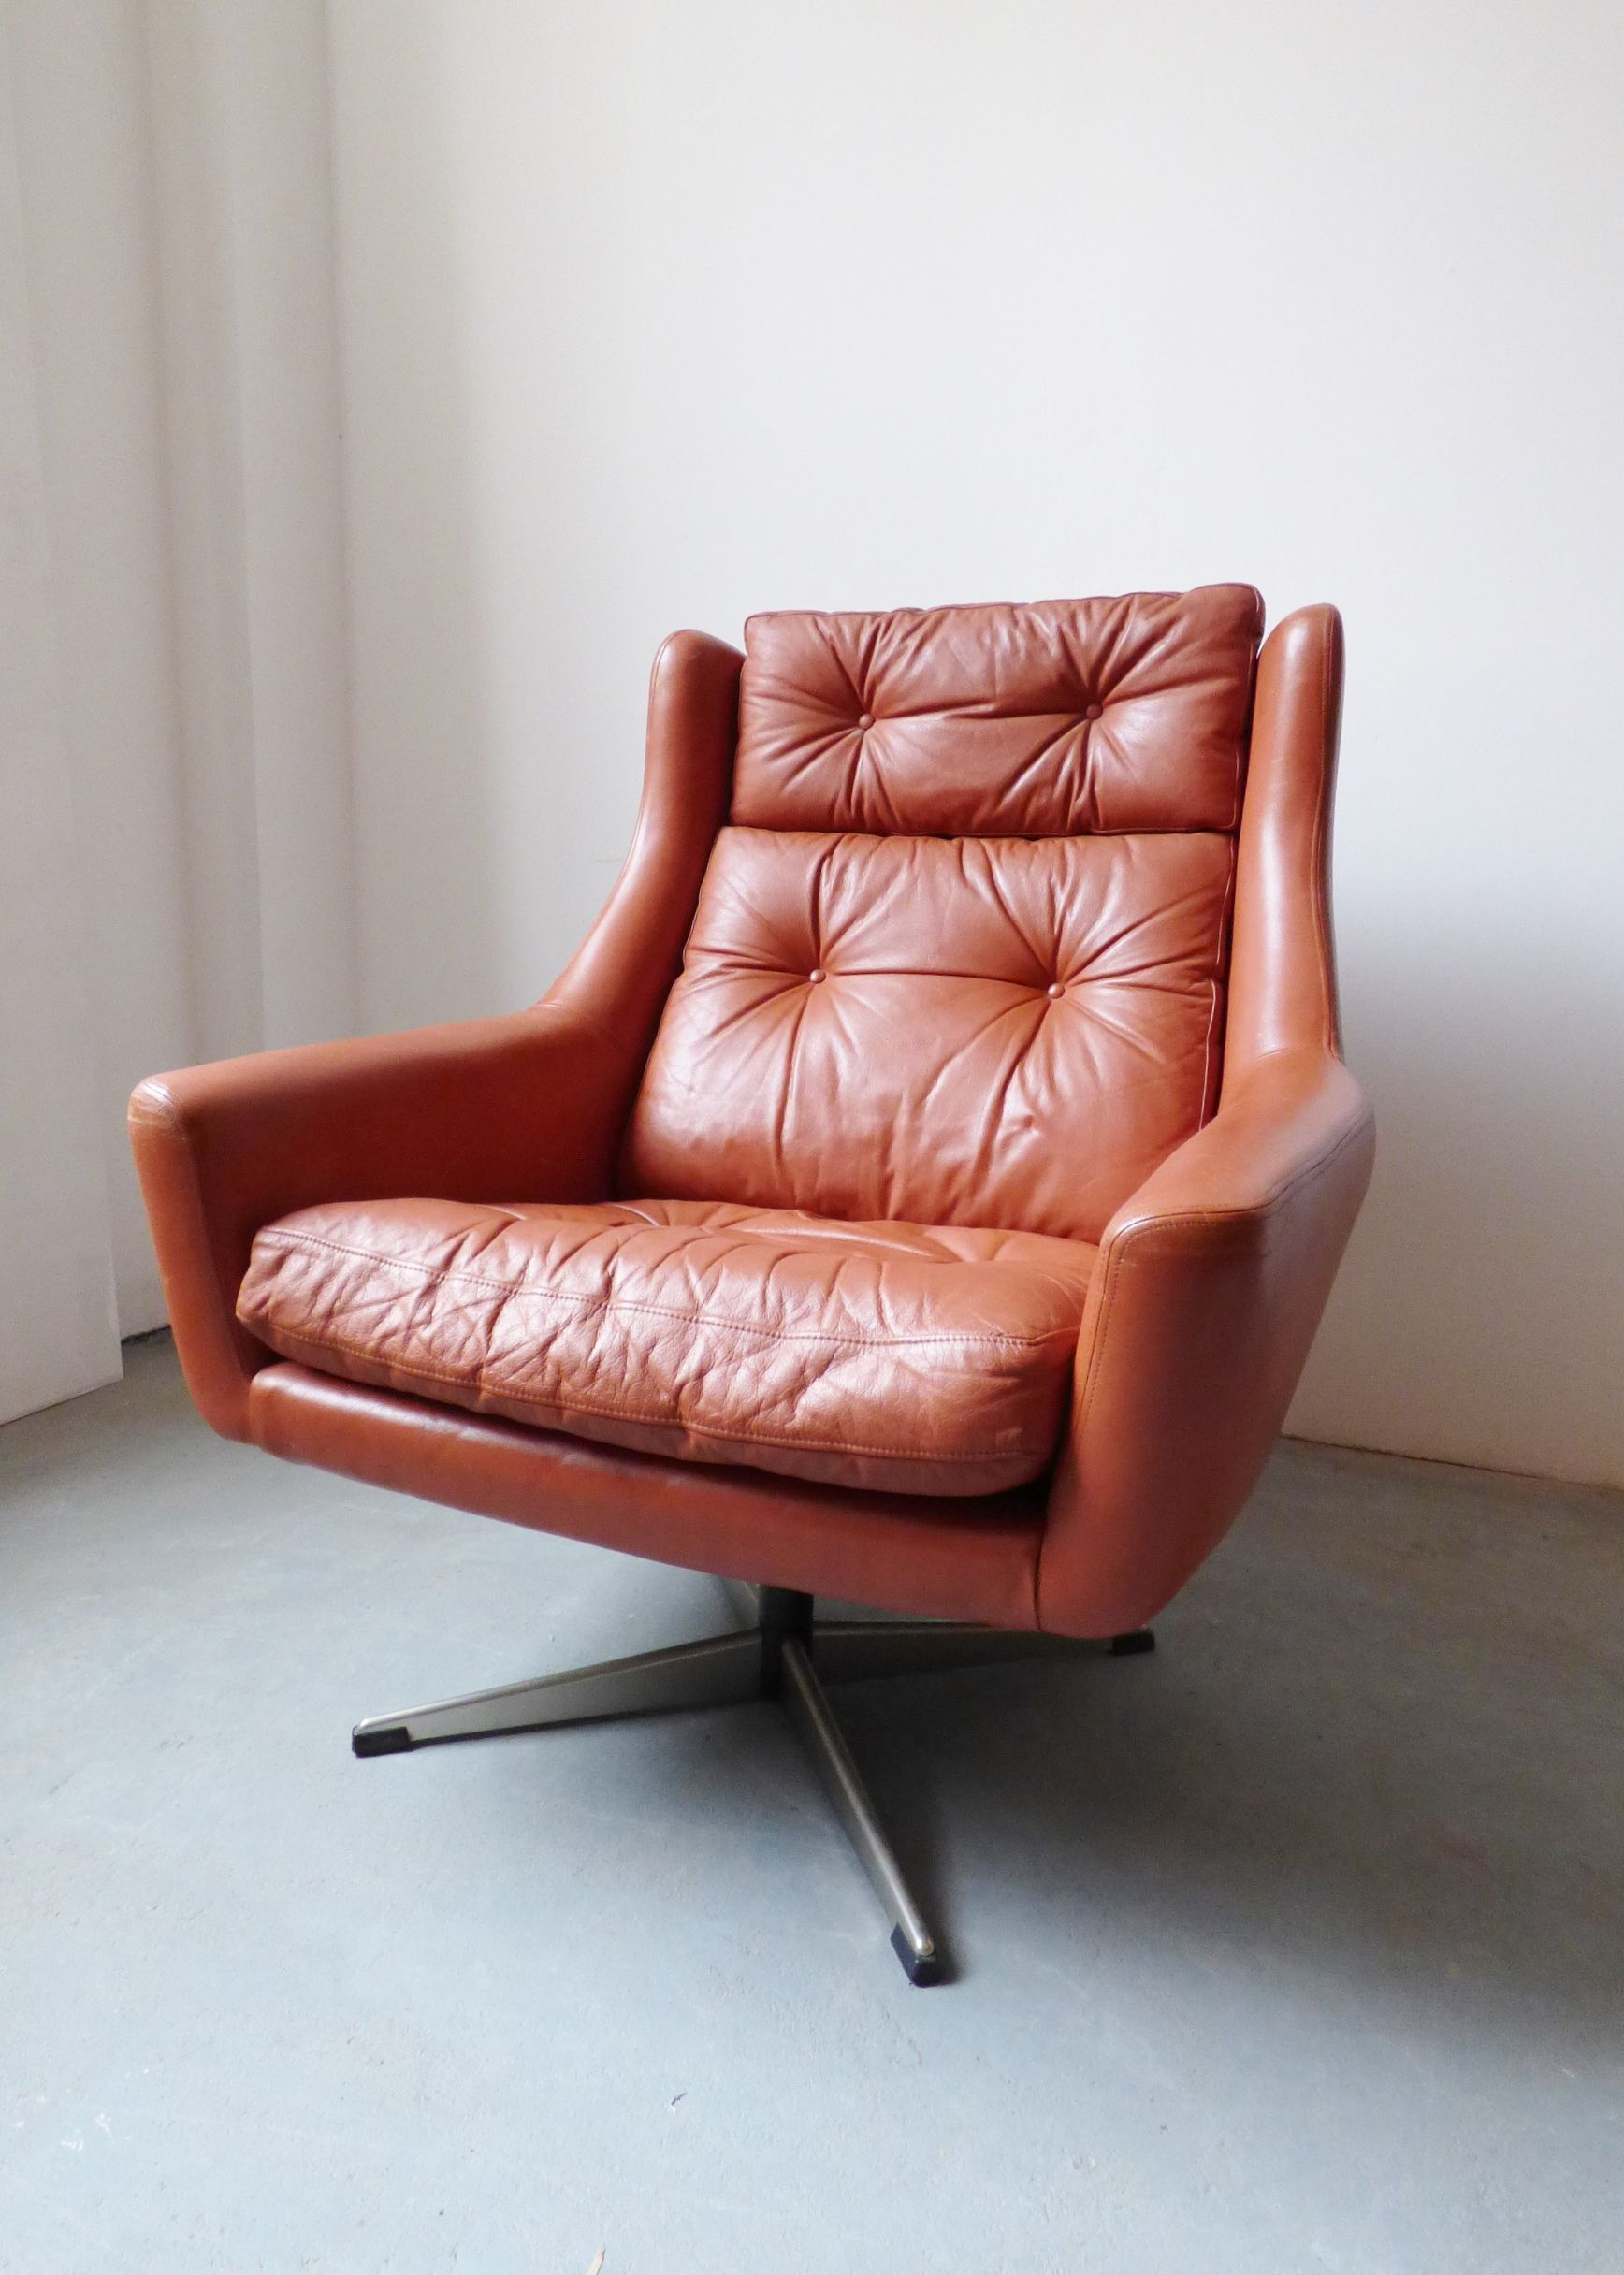 1960s Danish red leather swivel chair Leather swivel